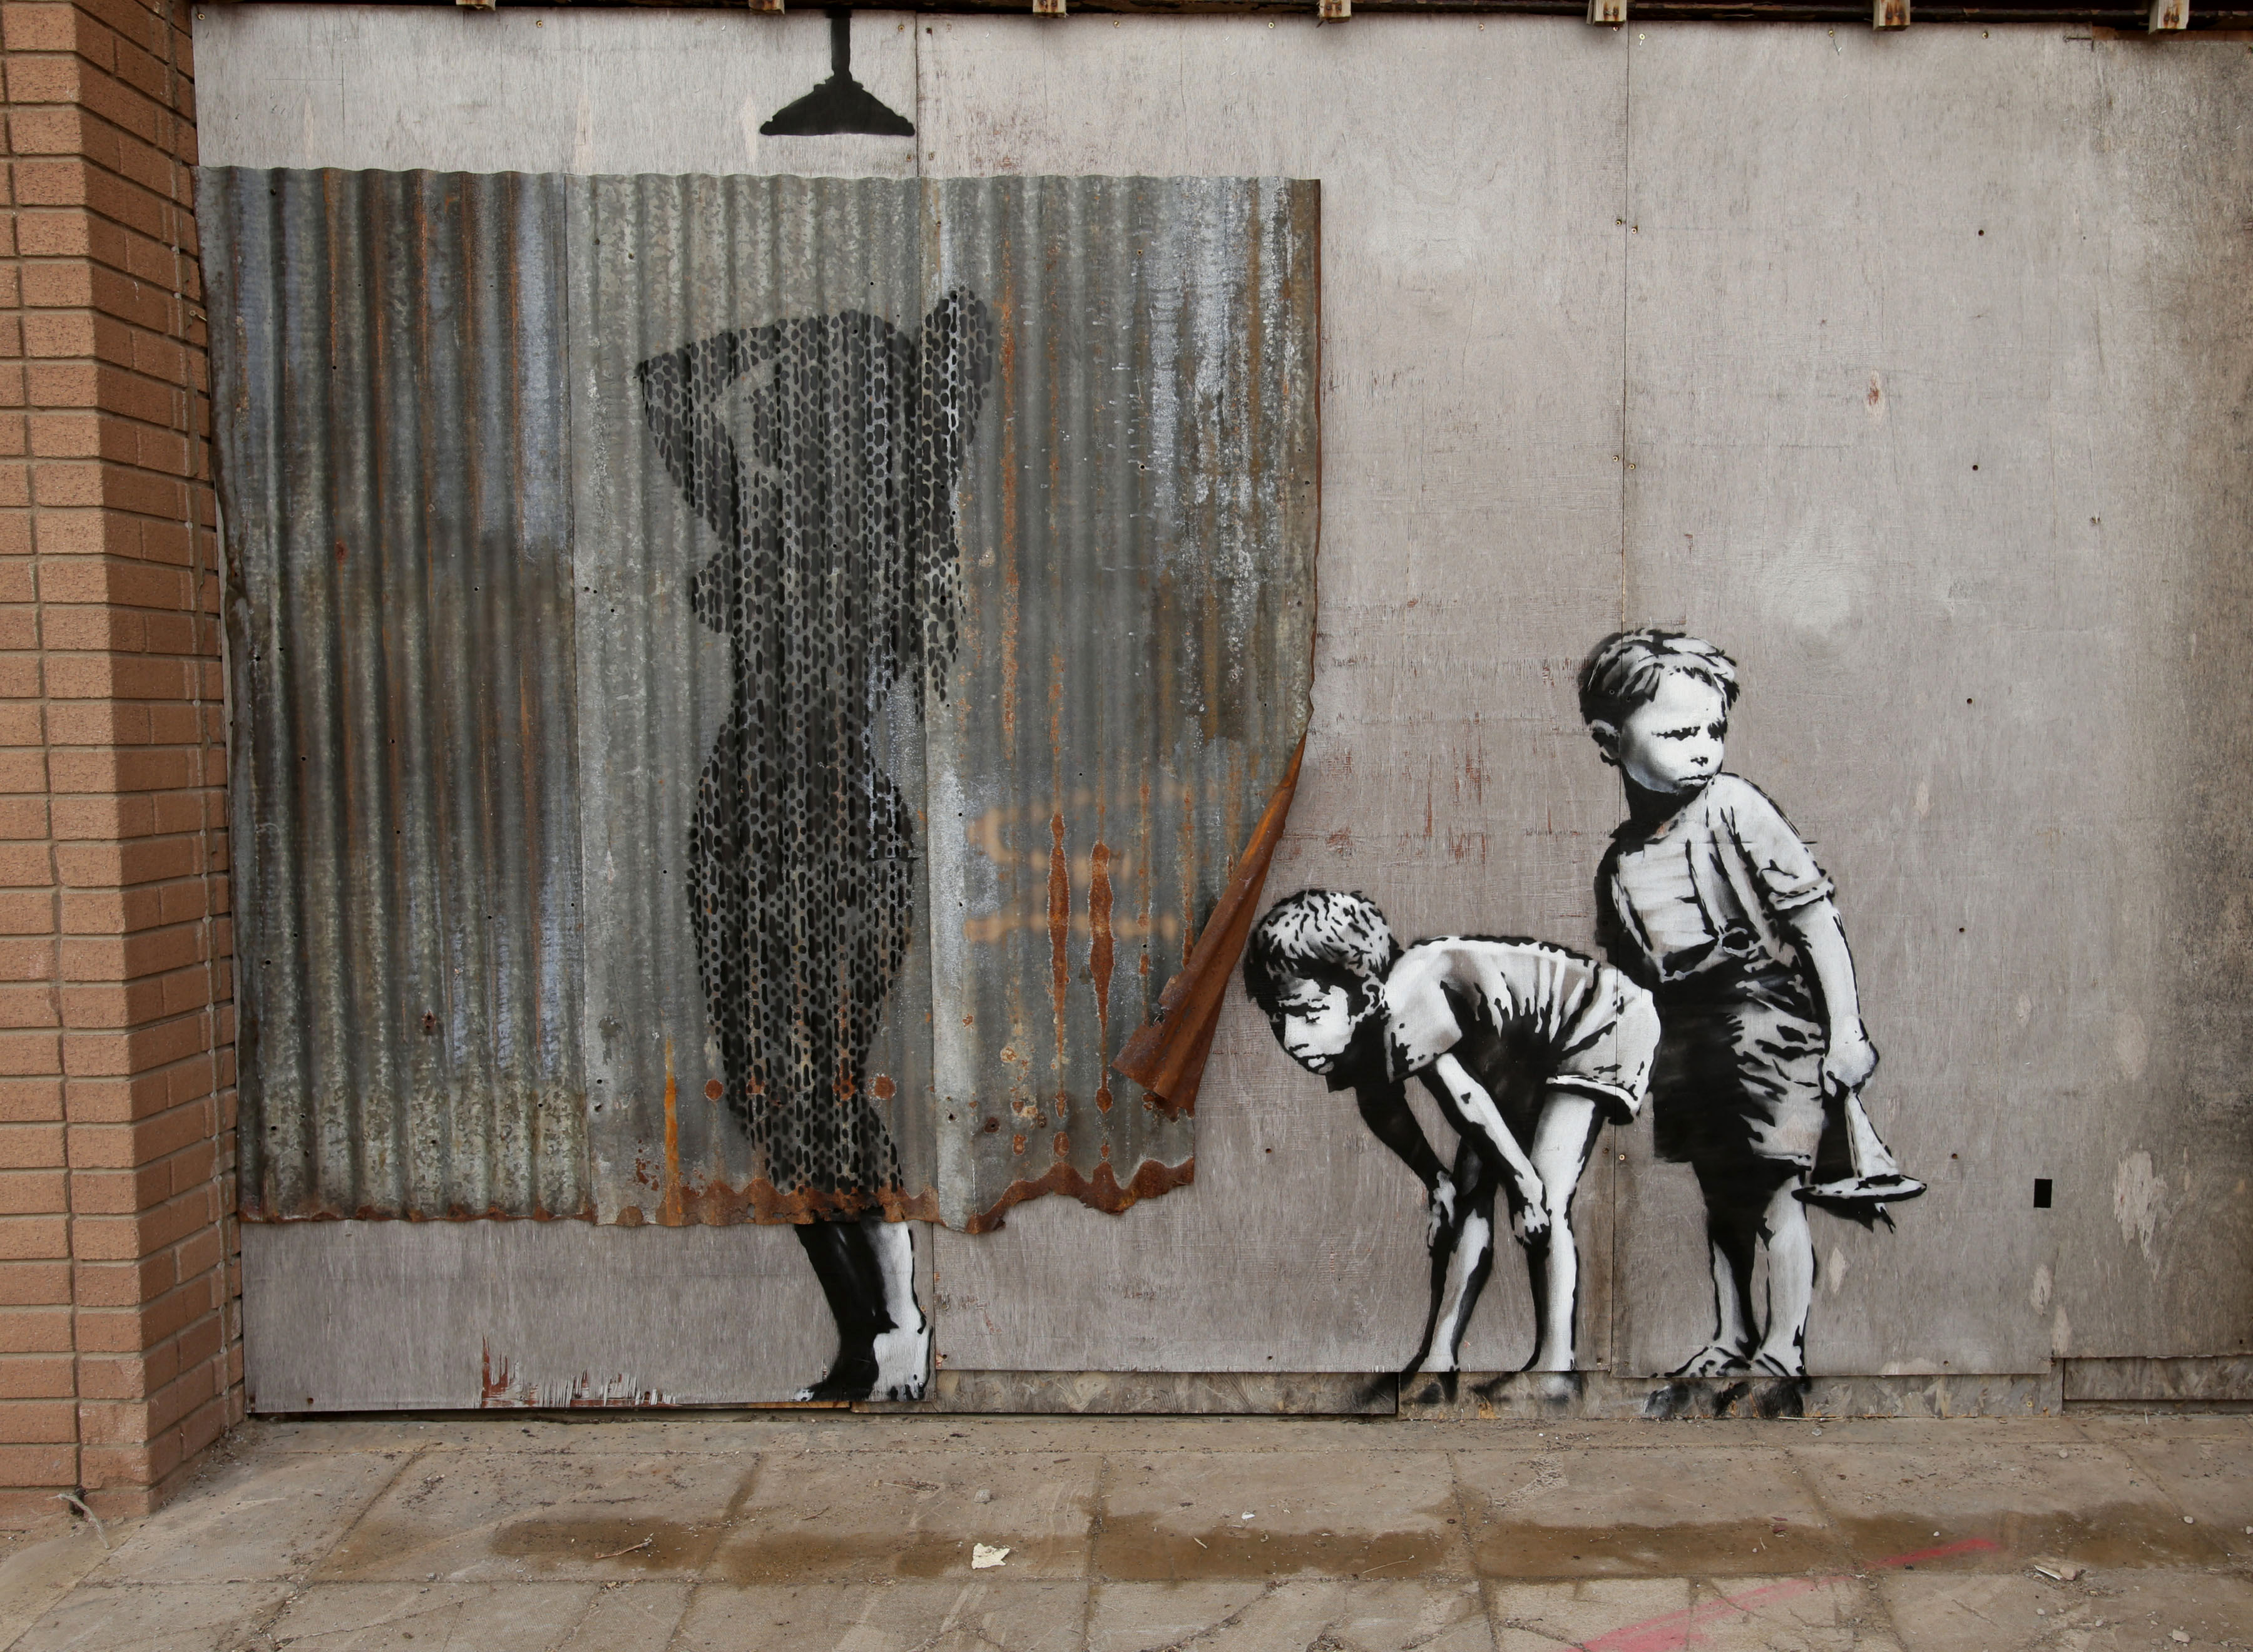 Panda Wall Mural Artist Banksy Opens Derelict Dismaland Theme Park The